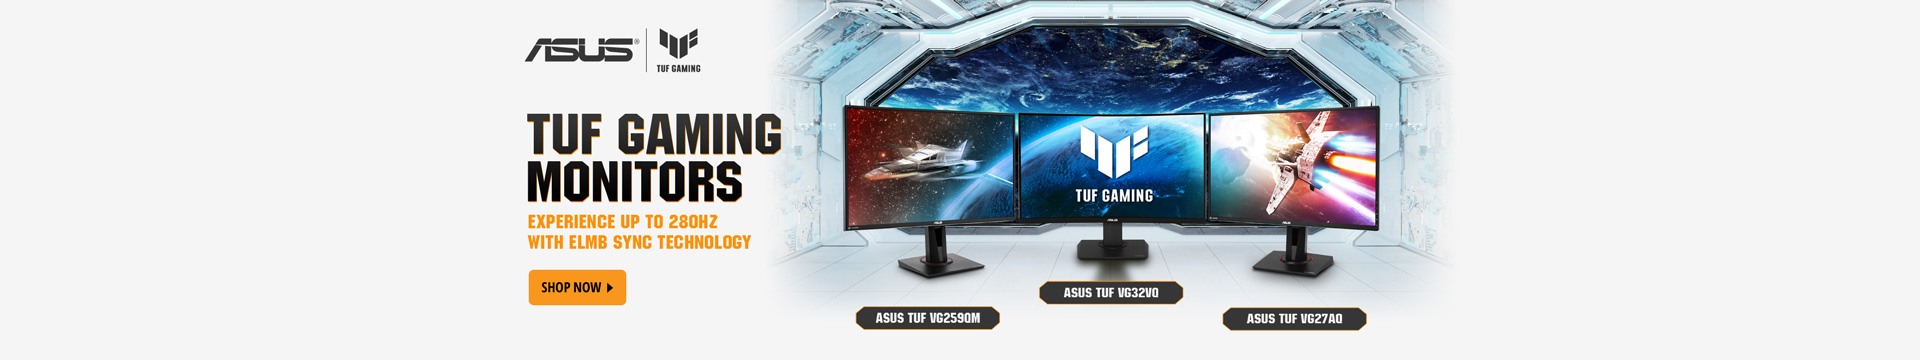 Asus TUF Gaming monitors